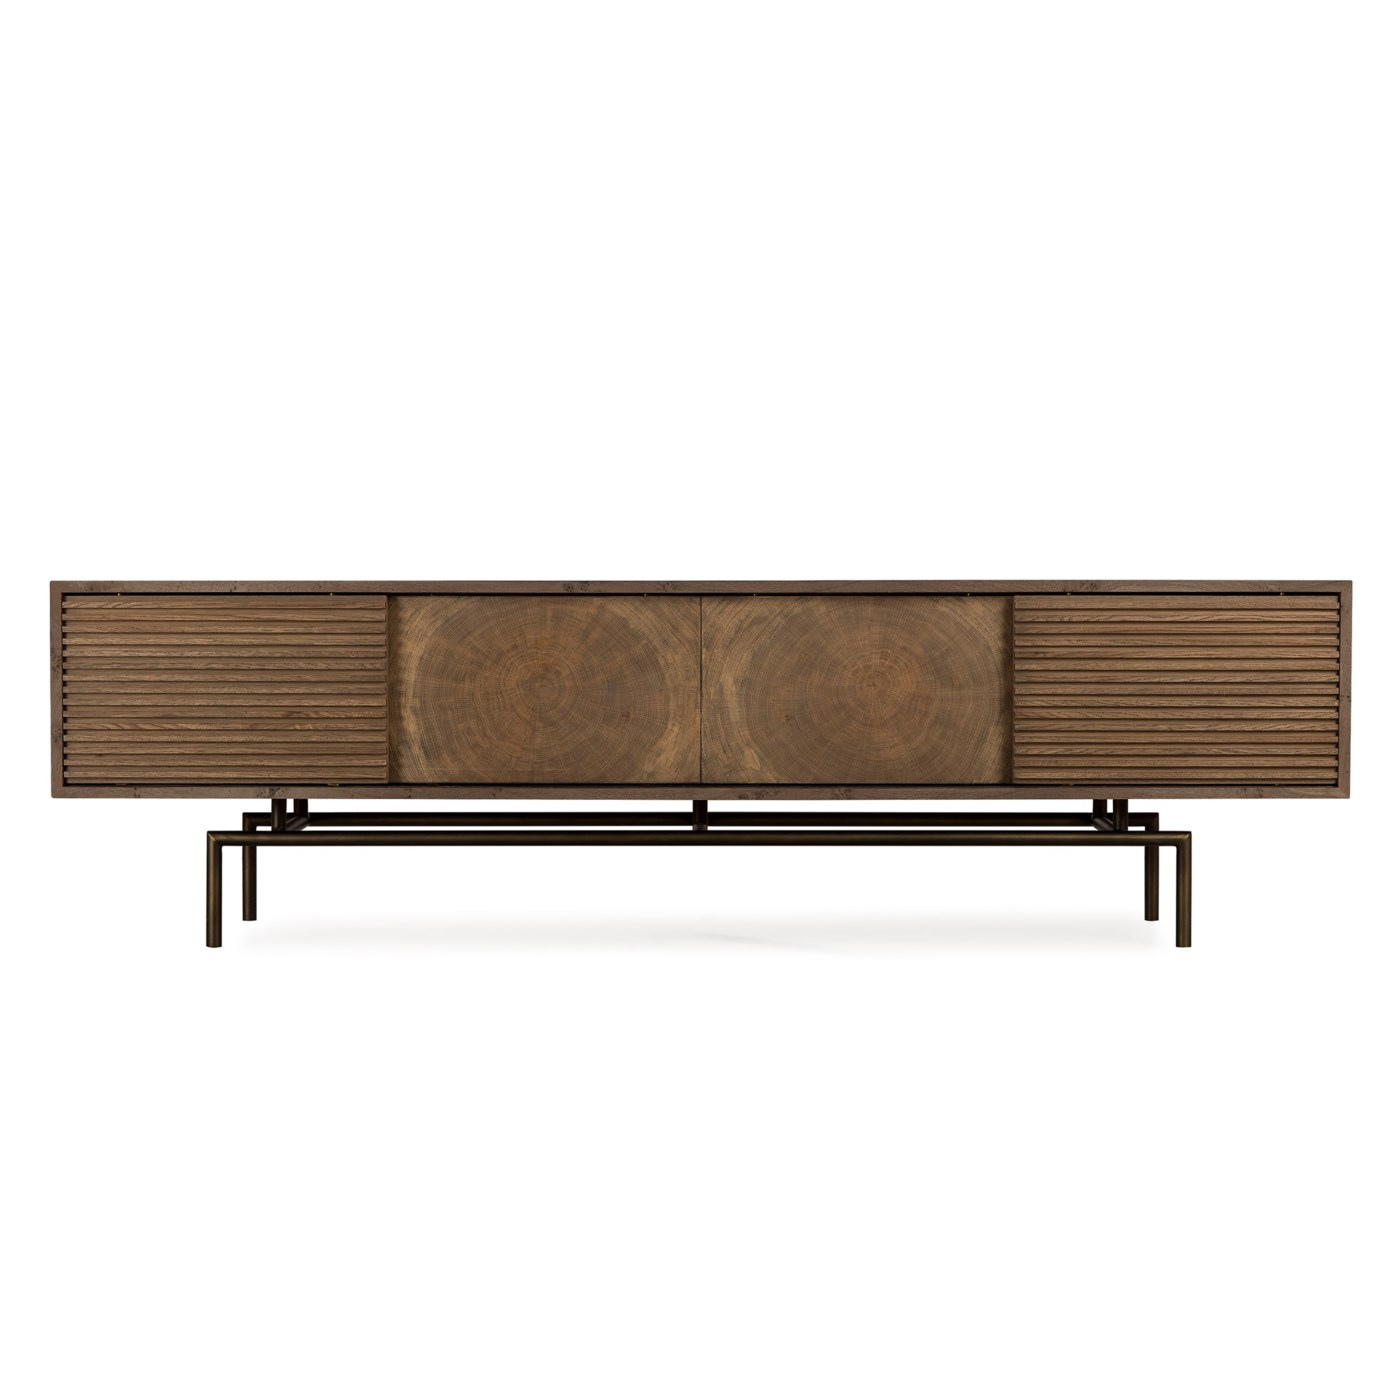 blaine media console table beds resource decor outdoor sideboard accent lamps for living room modern leather drum stool pub and chairs pier one off coupon code black metal glass